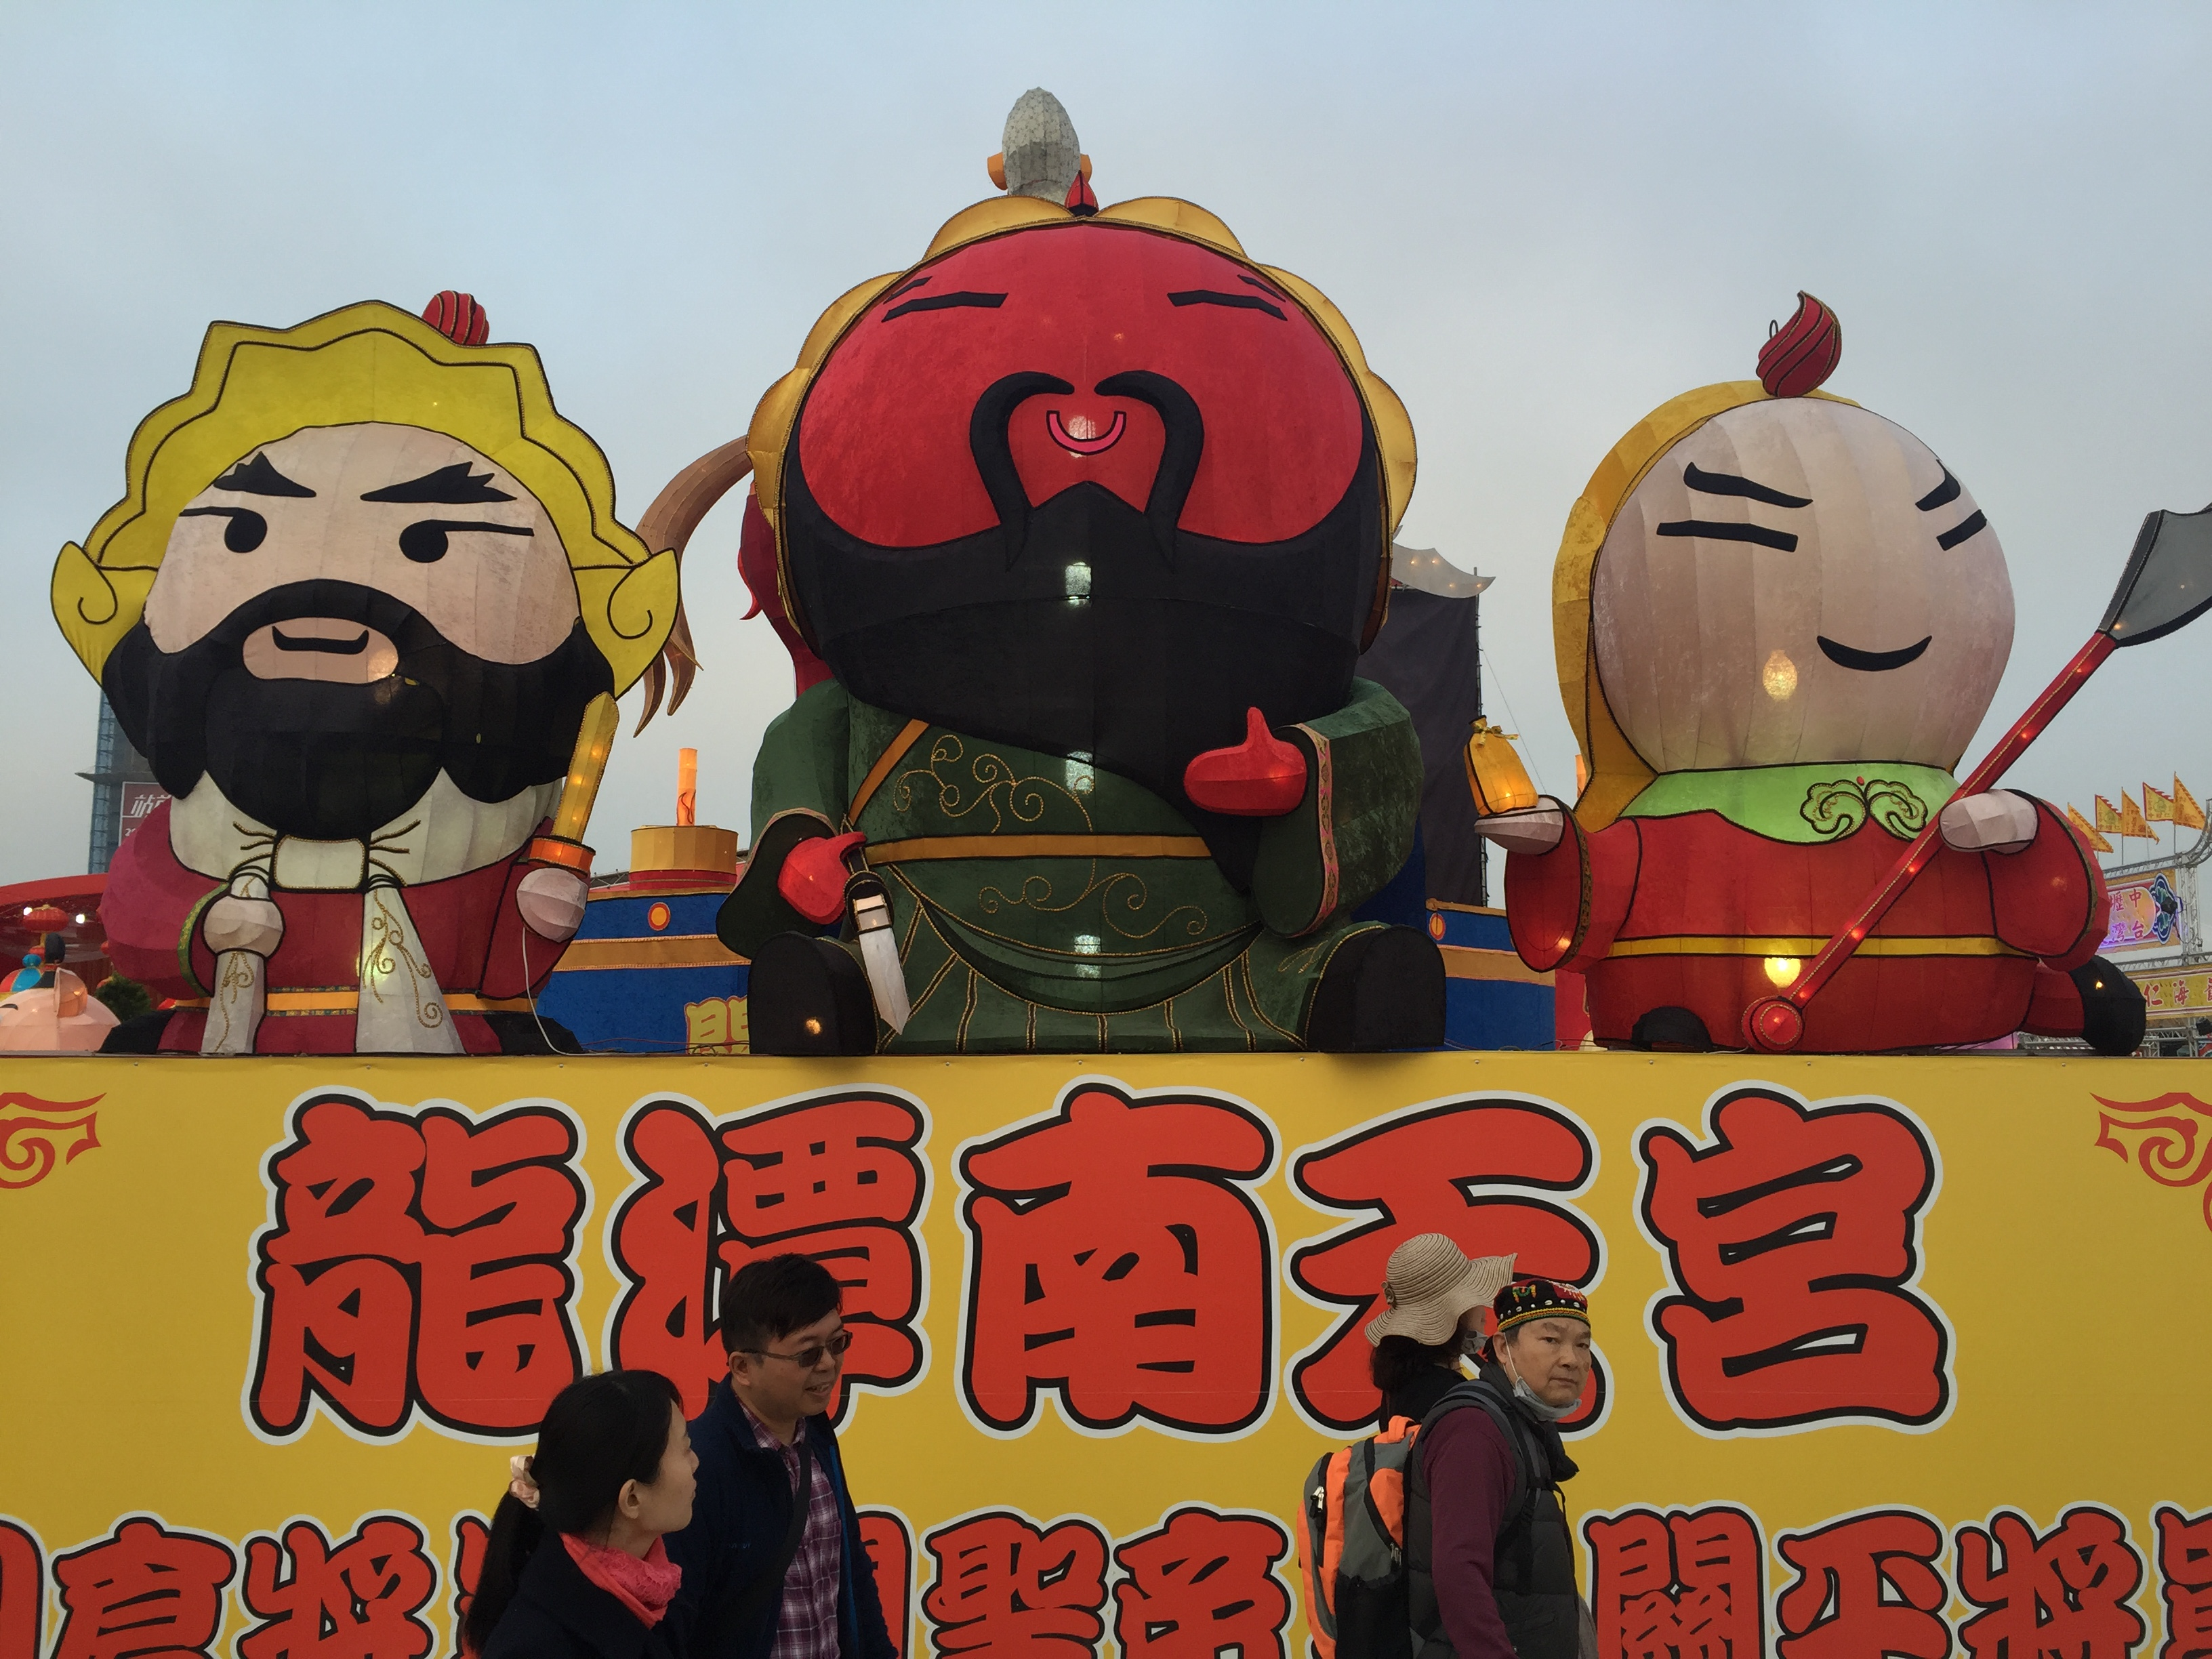 The God of War, Gaun Gong and his generals one of the many themes featured at this year's Taoyuan Lantern Festival in Taiwan